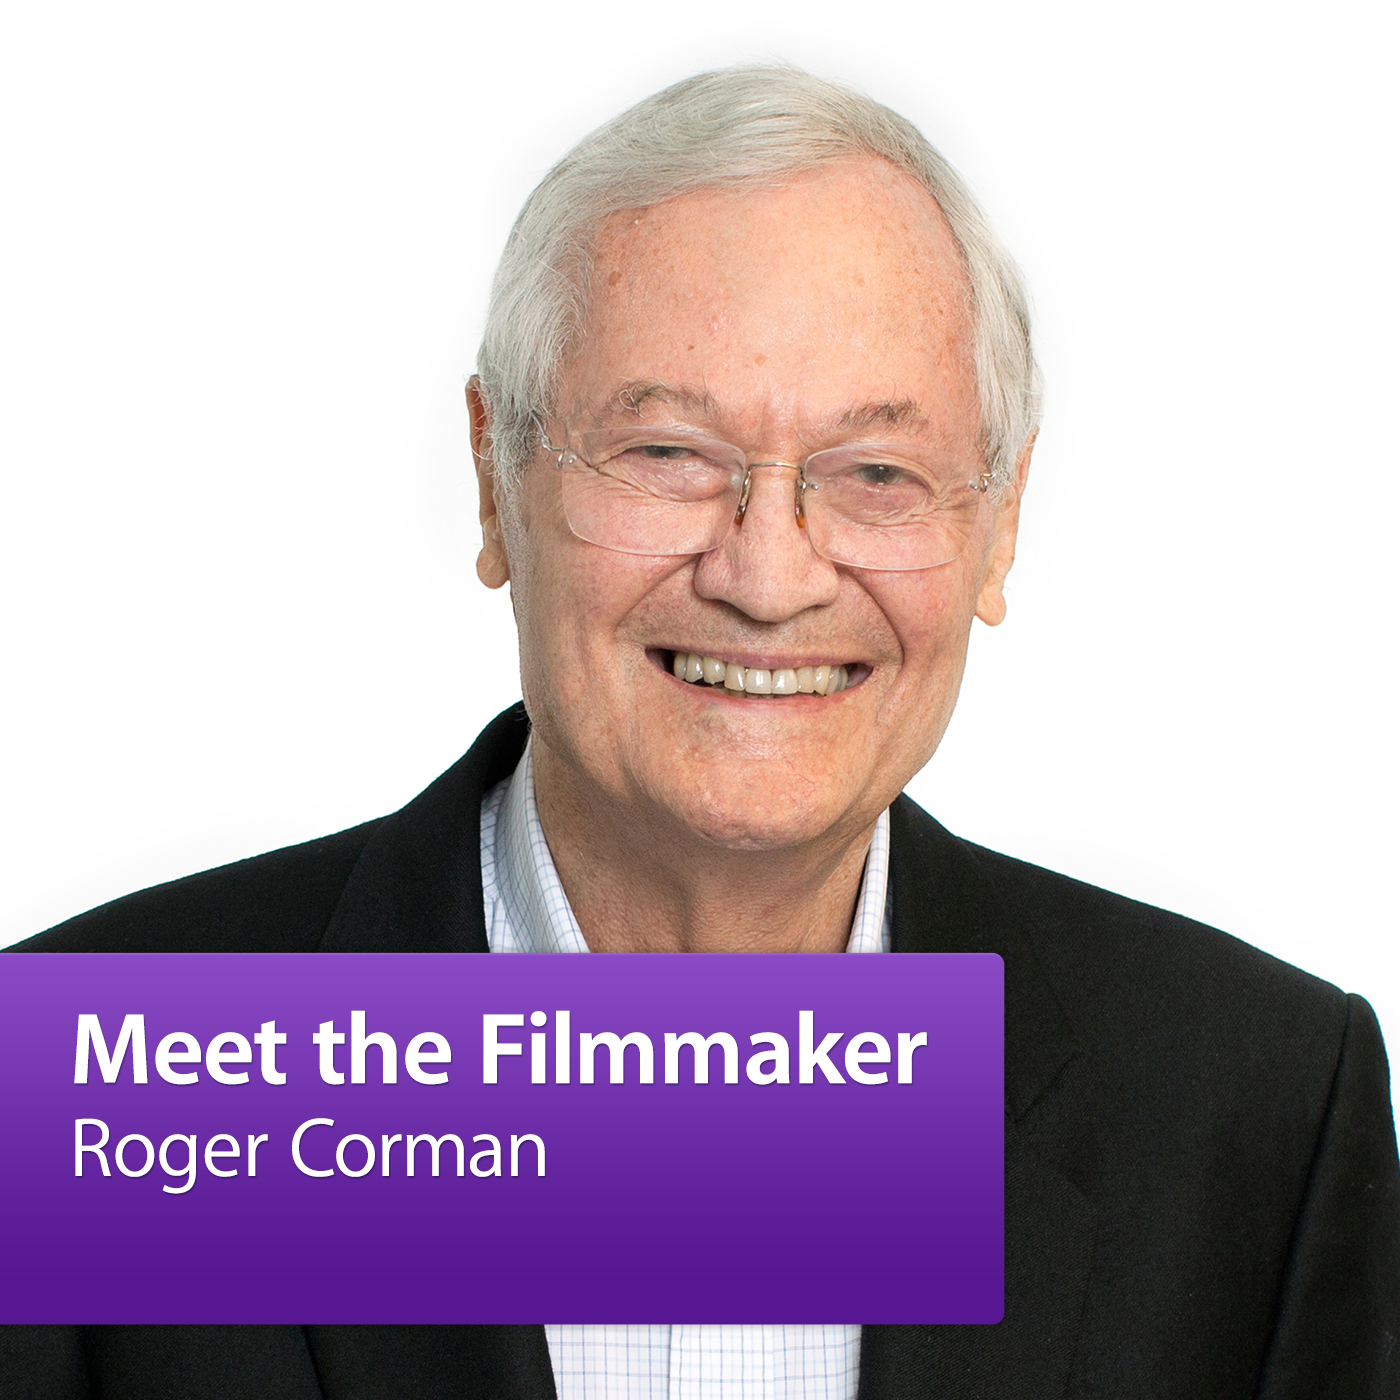 Roger Corman: Meet the Filmmaker